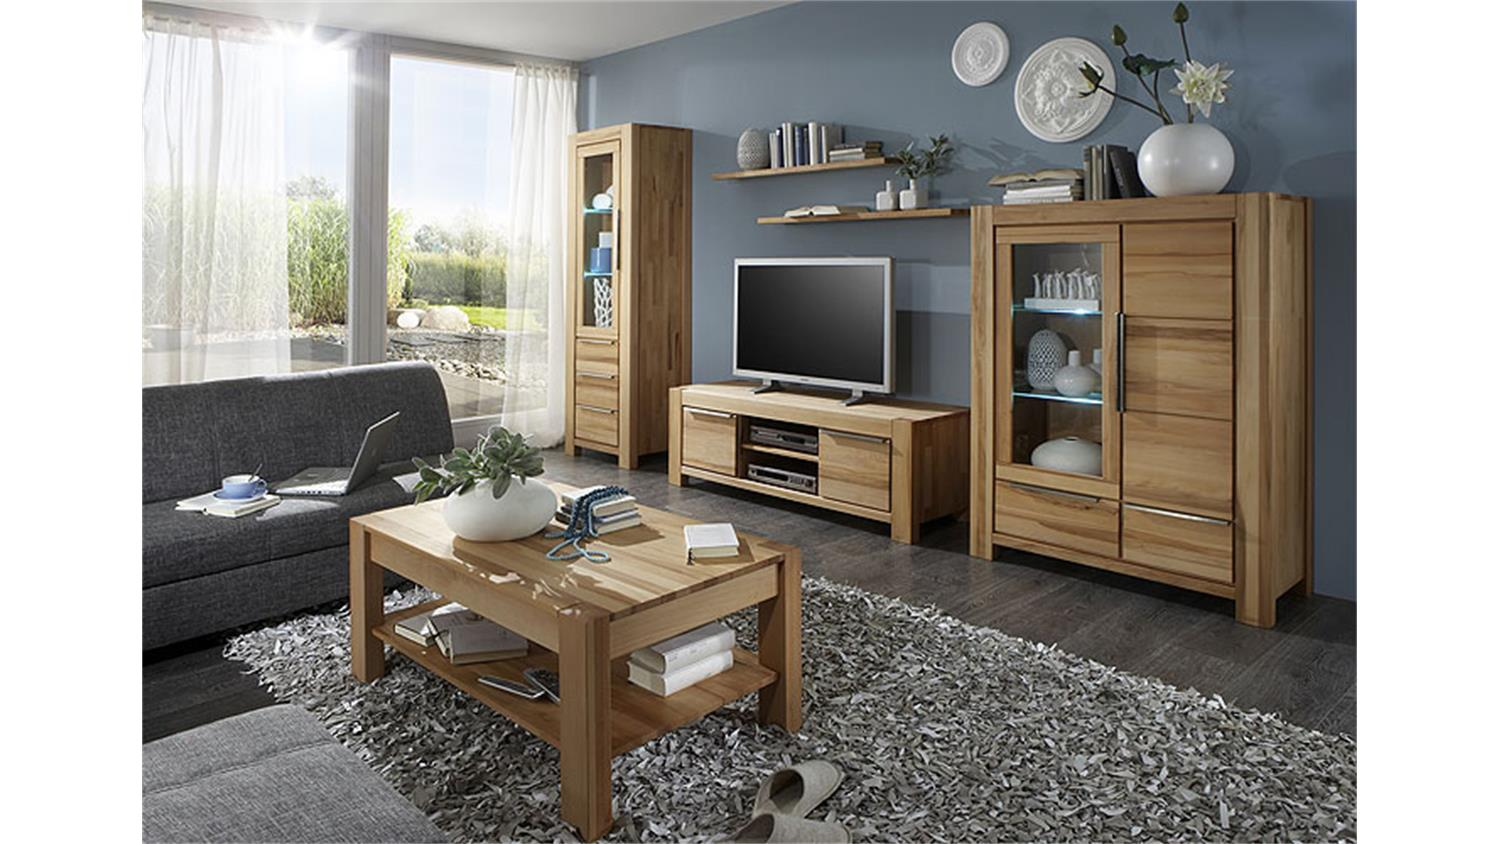 bcherregal kernbuche regal raumteiler heiko fcher in buchefarben with bcherregal kernbuche. Black Bedroom Furniture Sets. Home Design Ideas